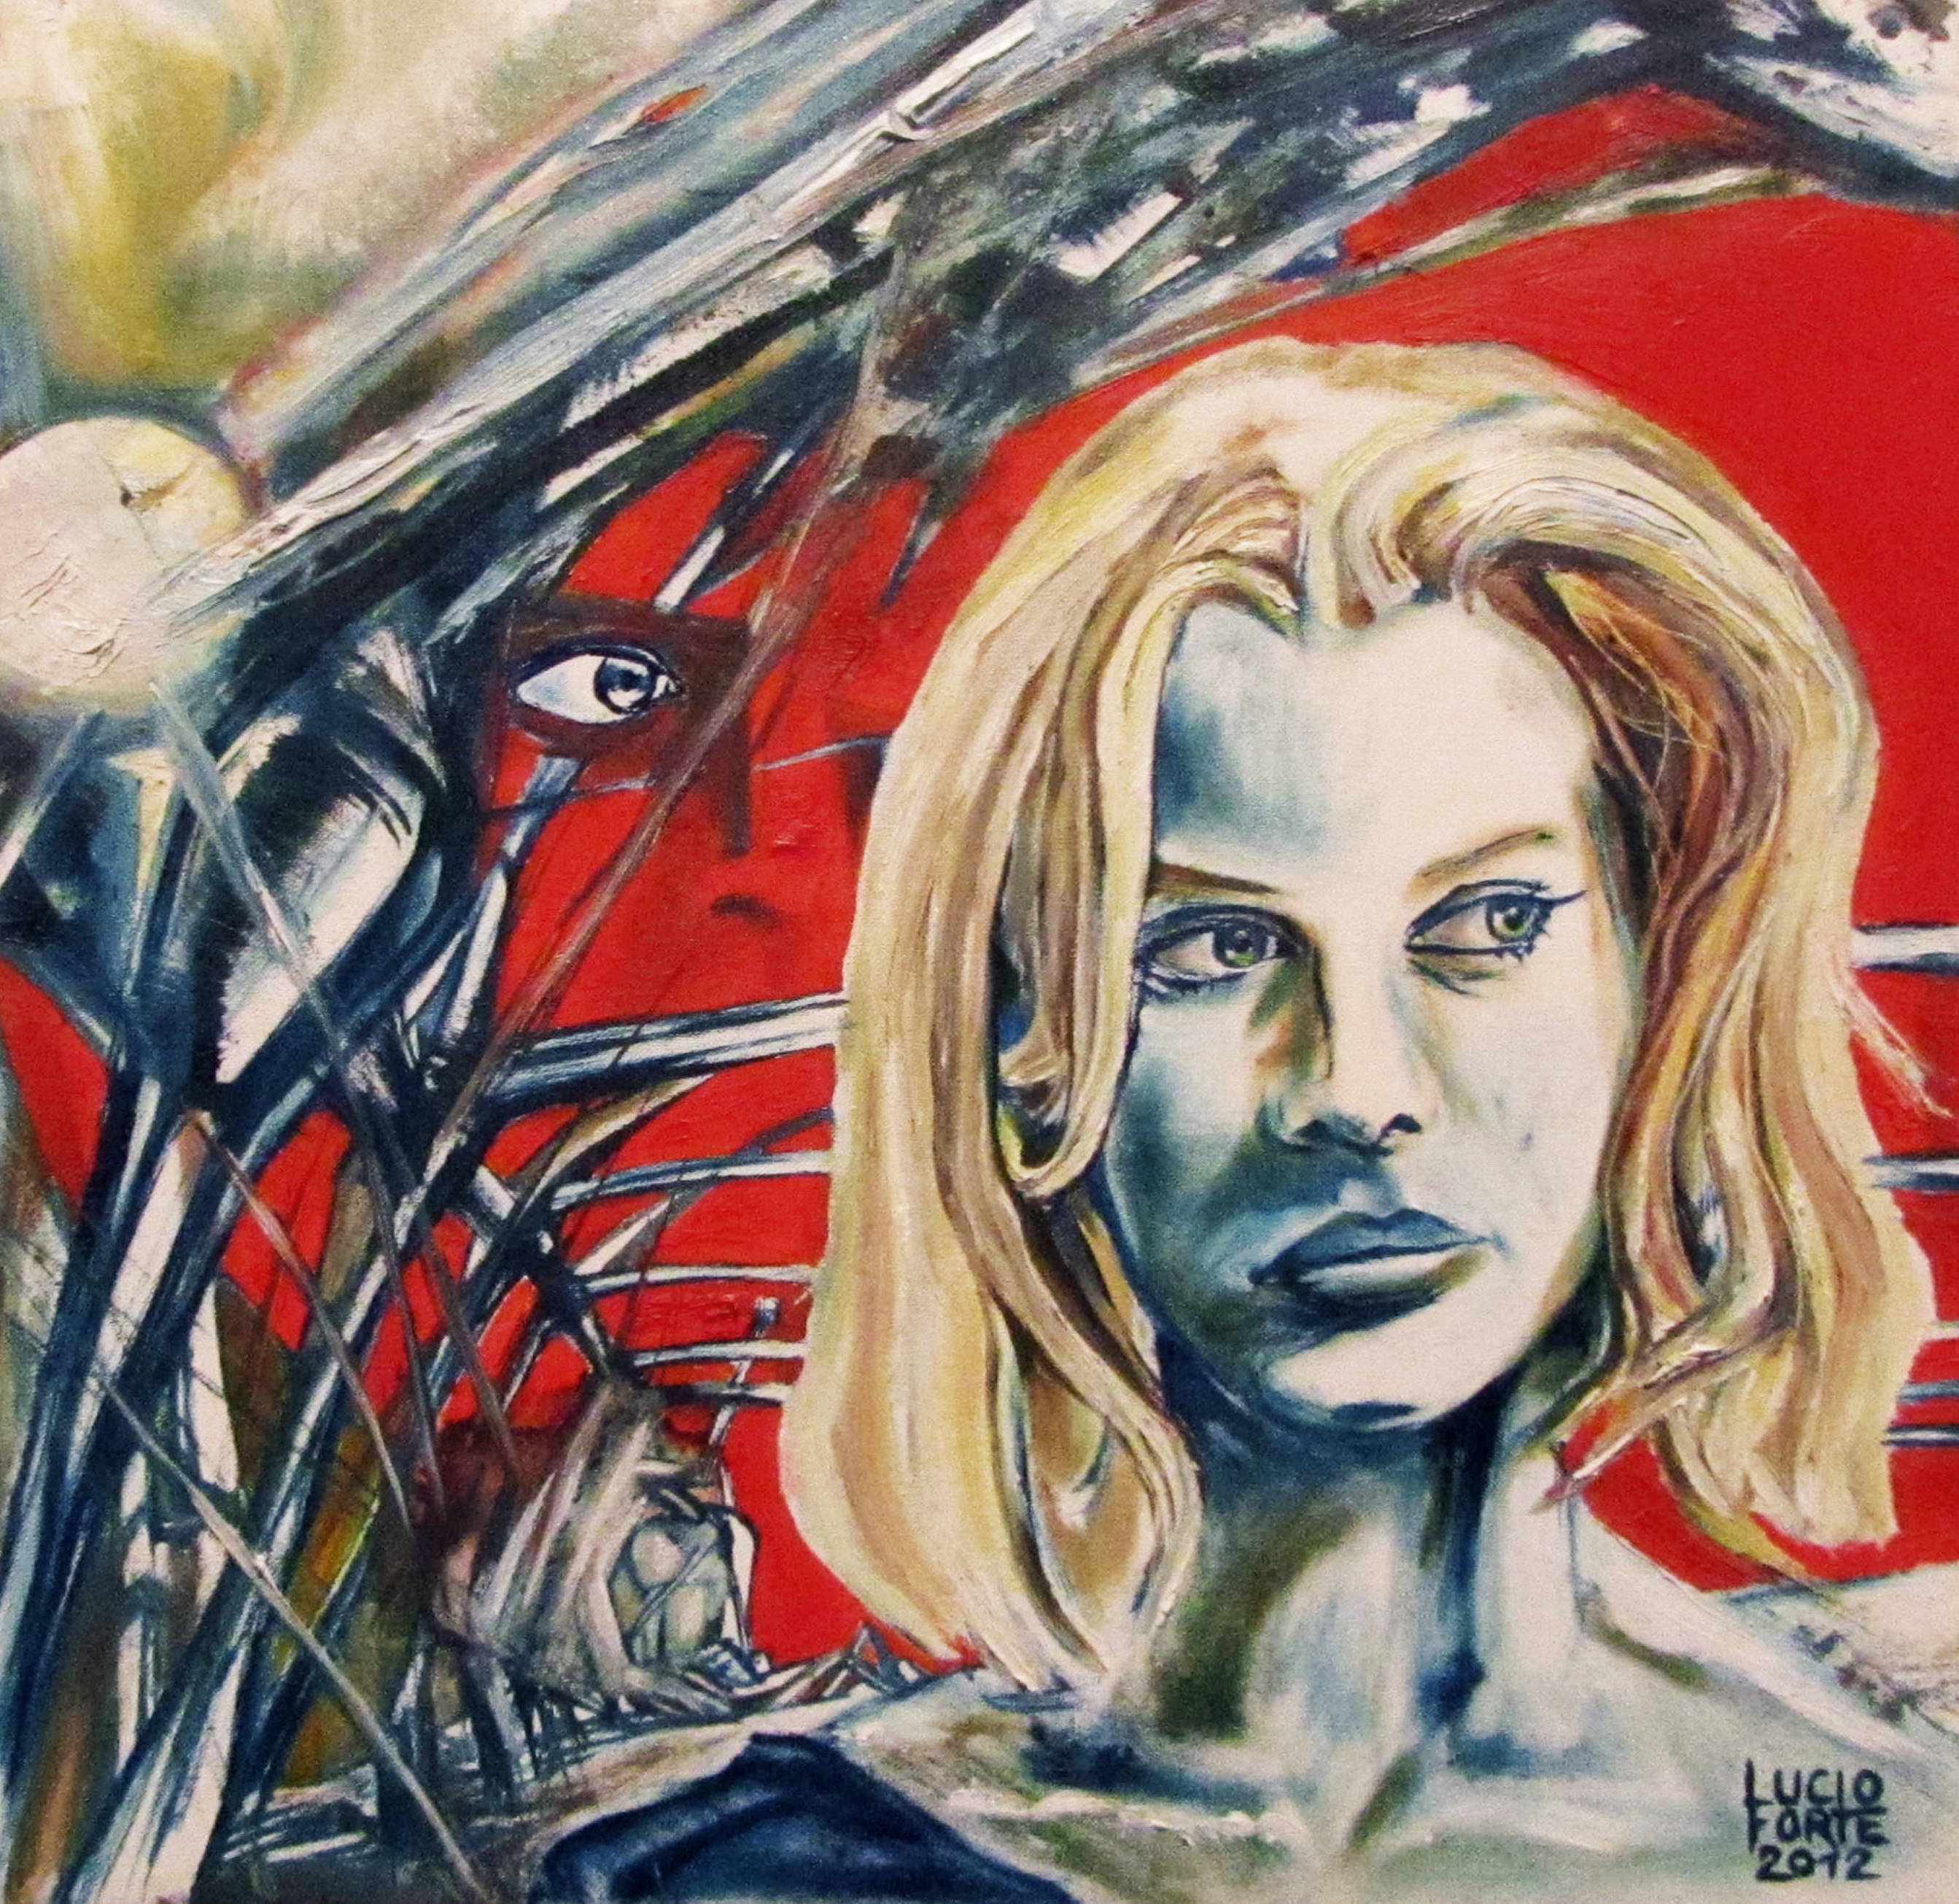 LucioForte2012 ParisTexas oil on canvas30x30